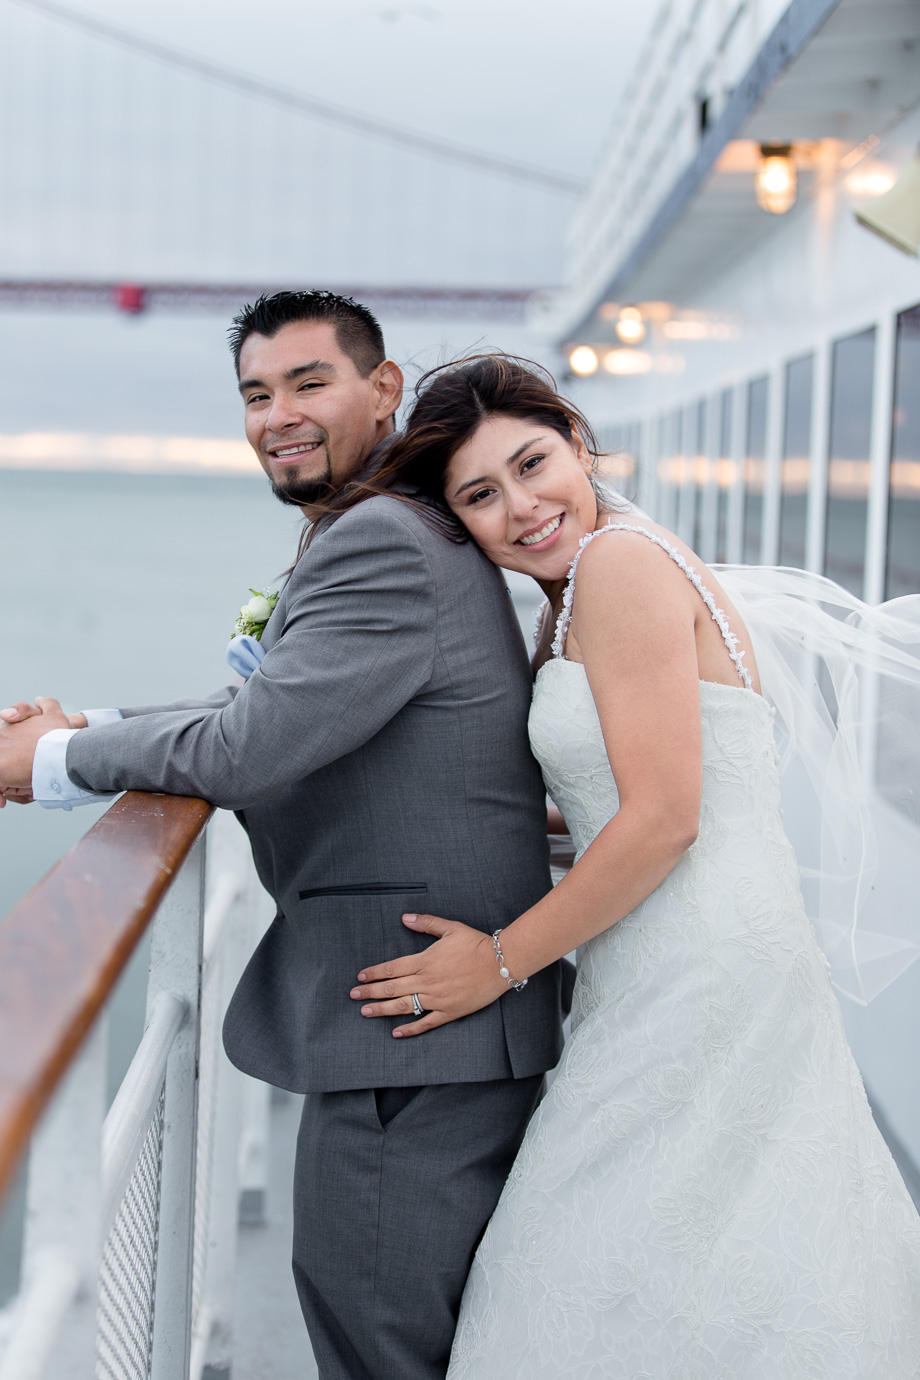 Portrait of bride behind groom on California Hornblower cruise ship with Golden Gate Bridge in the background